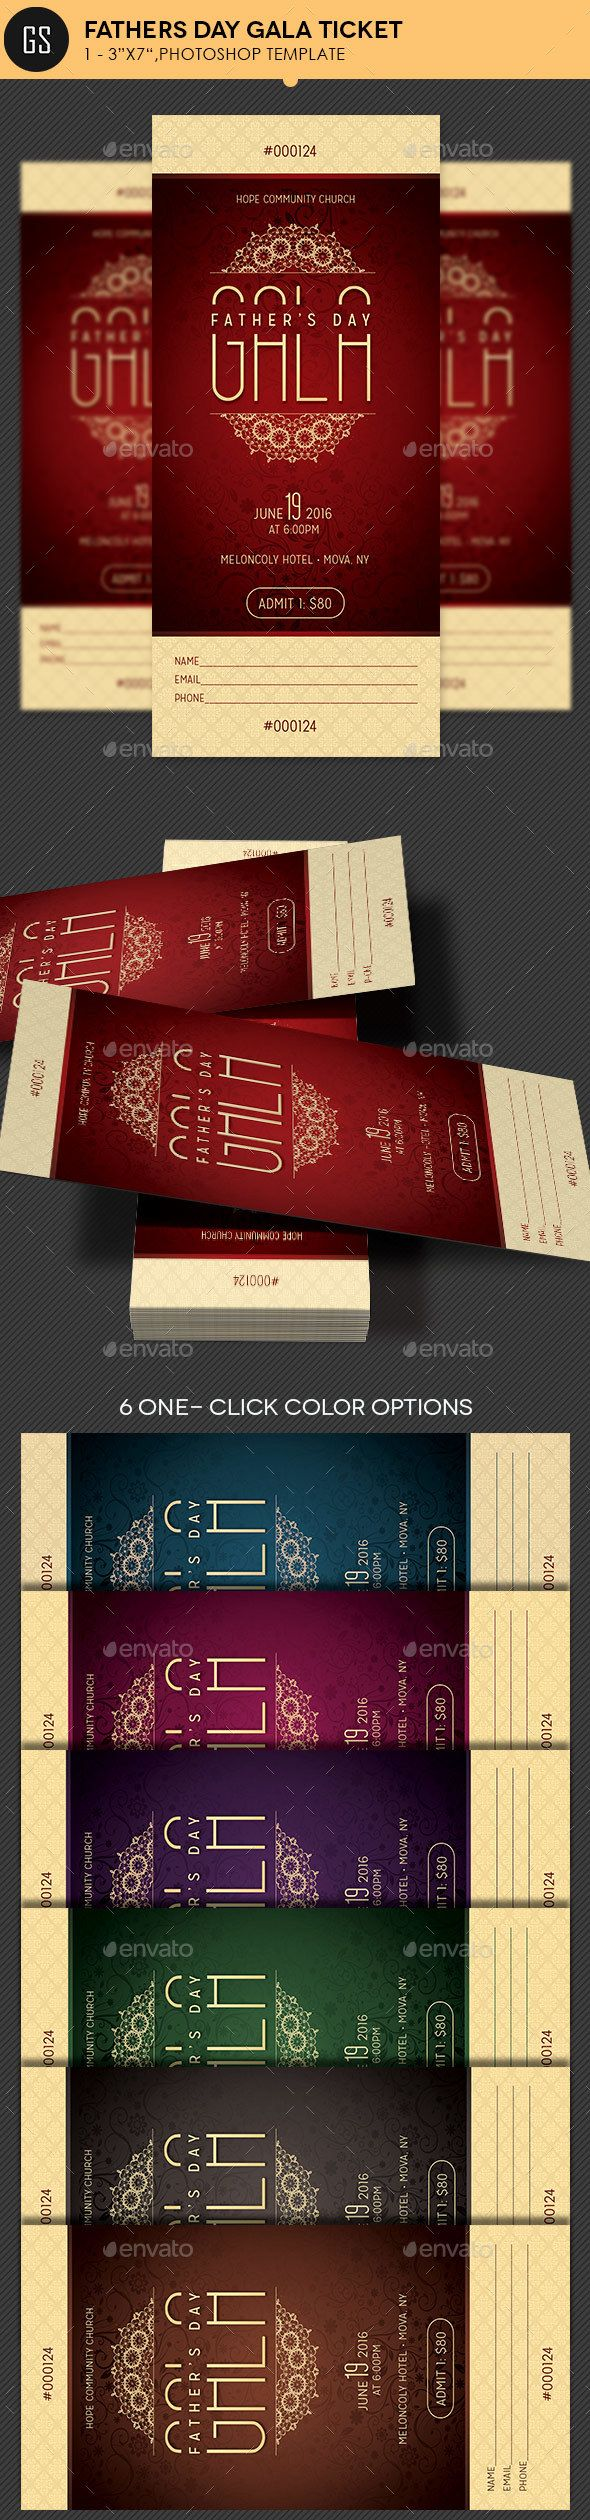 Fathers Day Gala Ticket Template PSD. Download here: https://graphicriver.net/item/fathers-day-gala-ticket-template/15930913?ref=ksioks